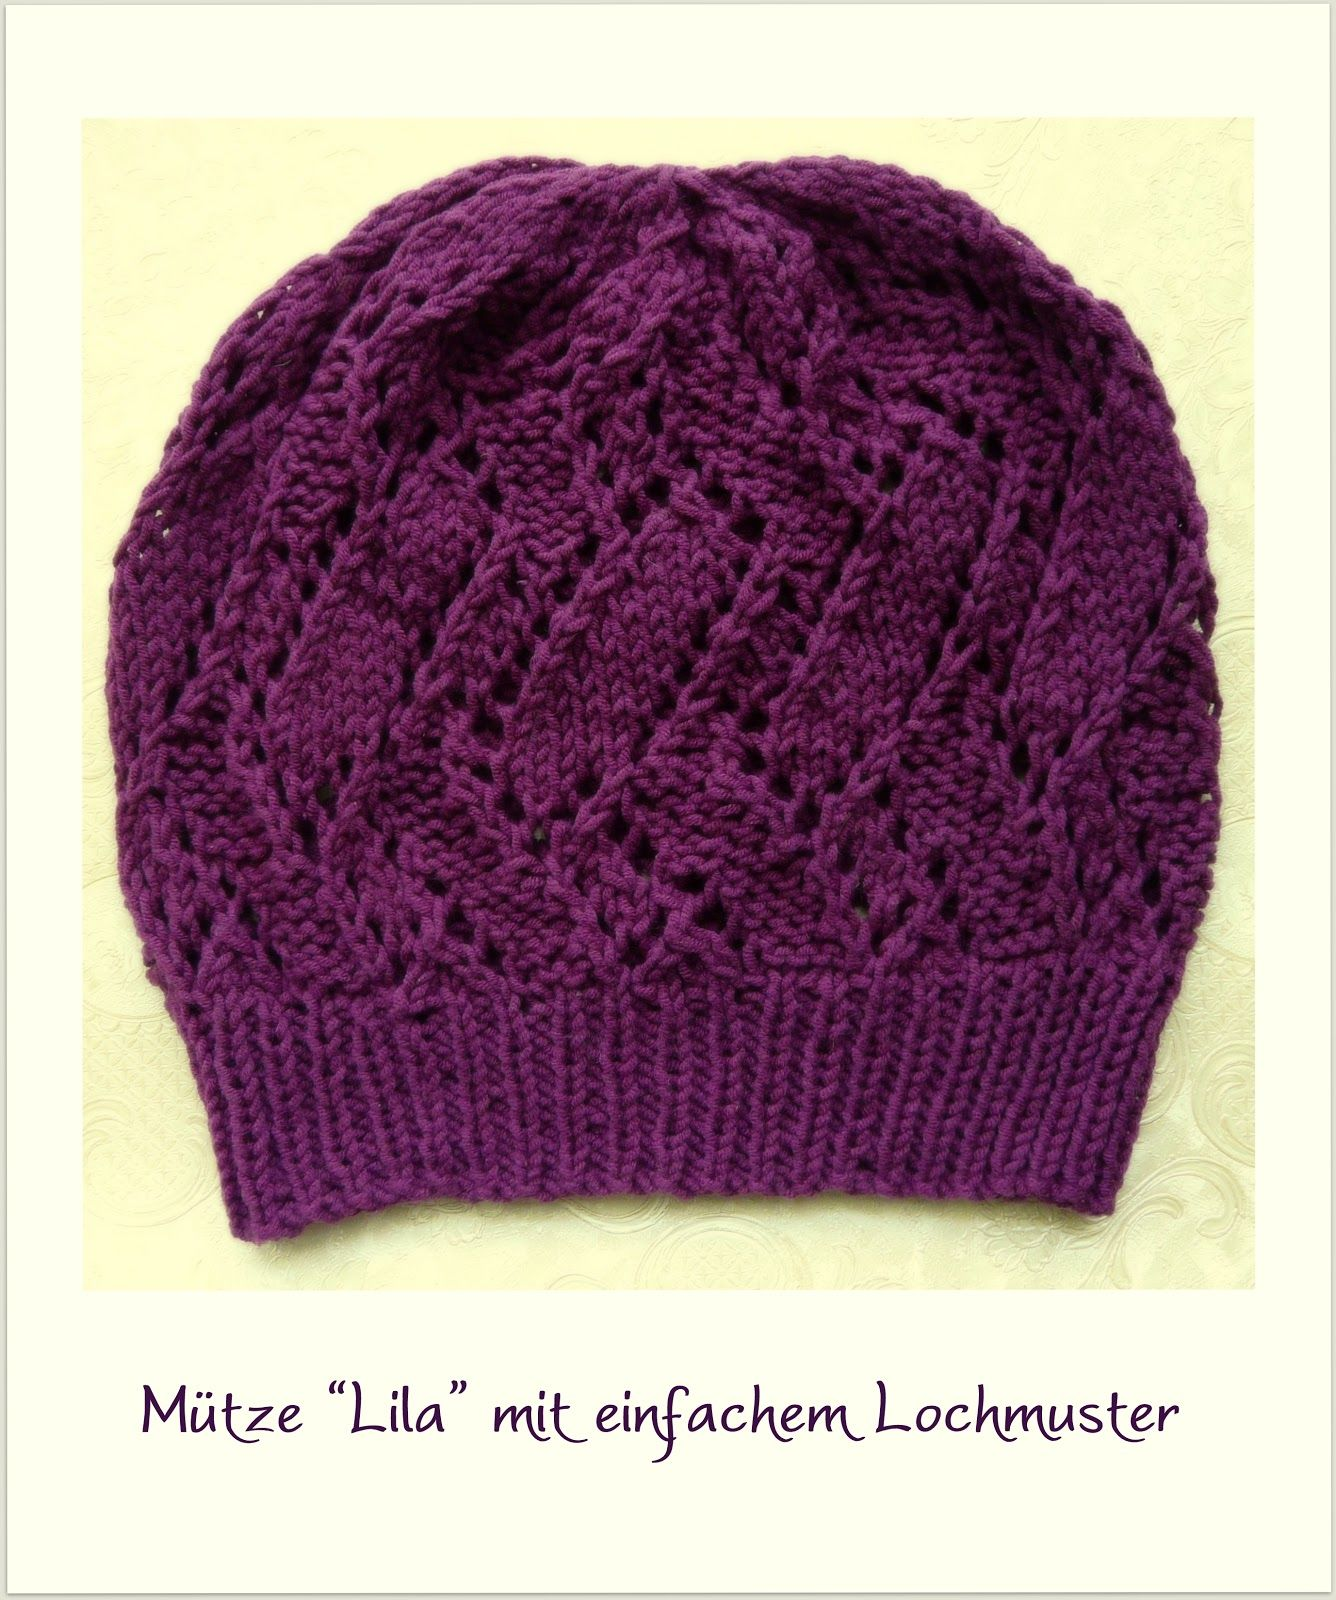 Dorable Häkeln Taufe Schal Muster Elaboration - Decke Stricken ...